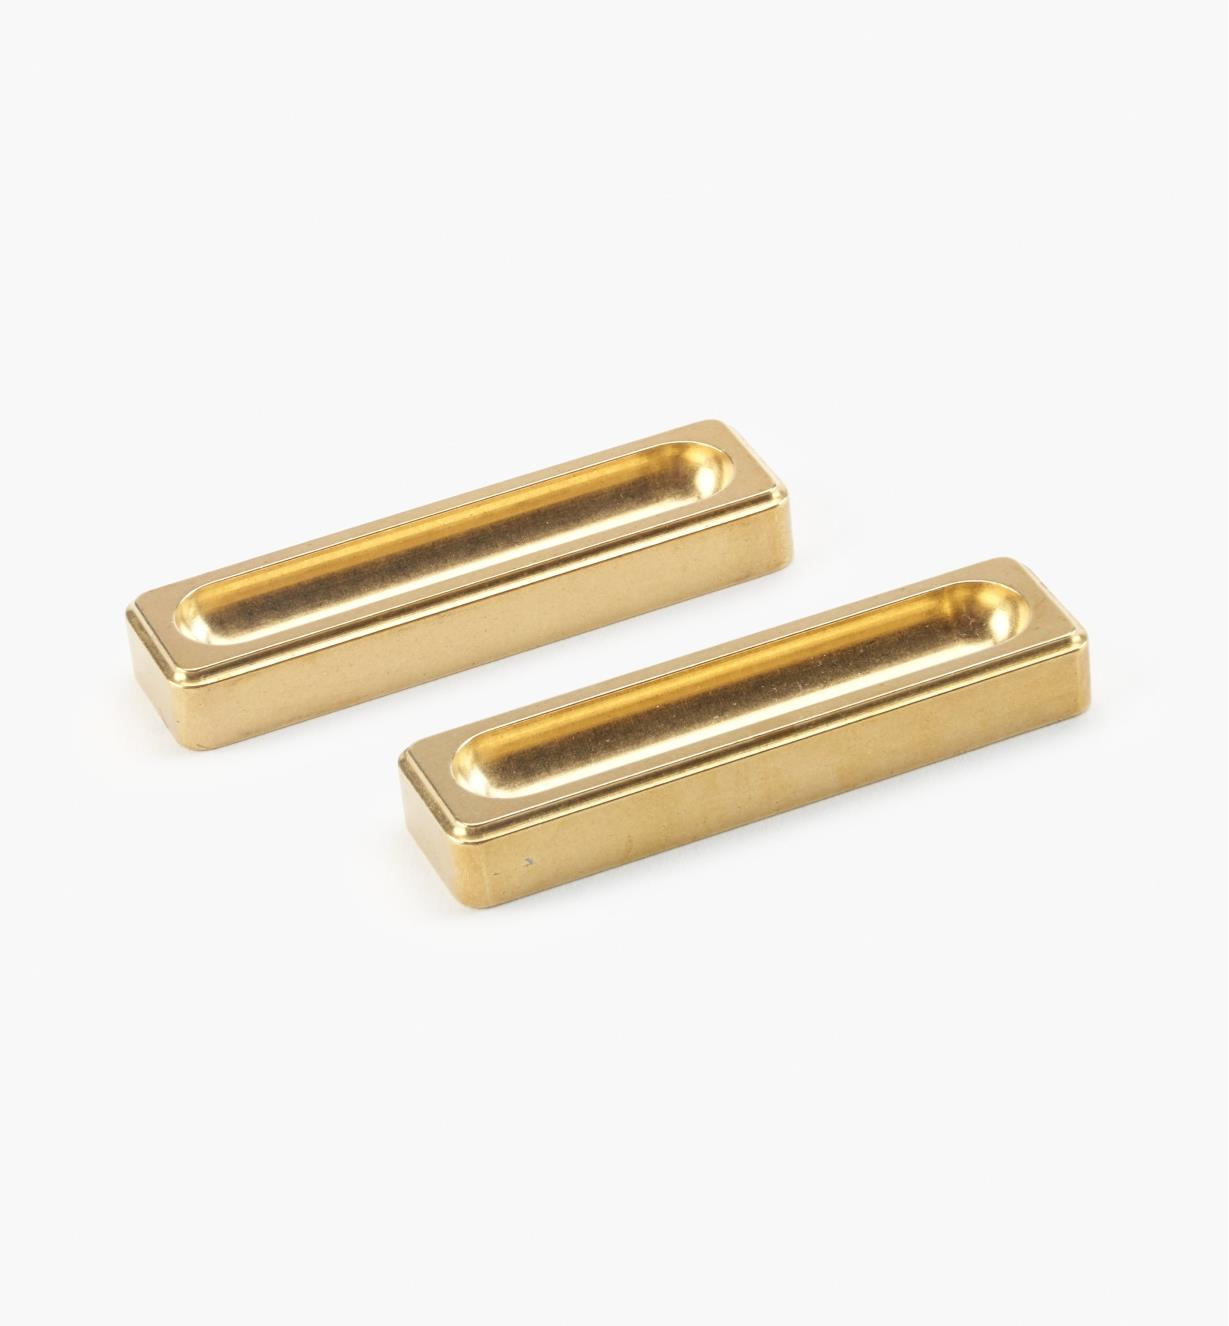 01B0801 - Jewellery Box Handles, pr.